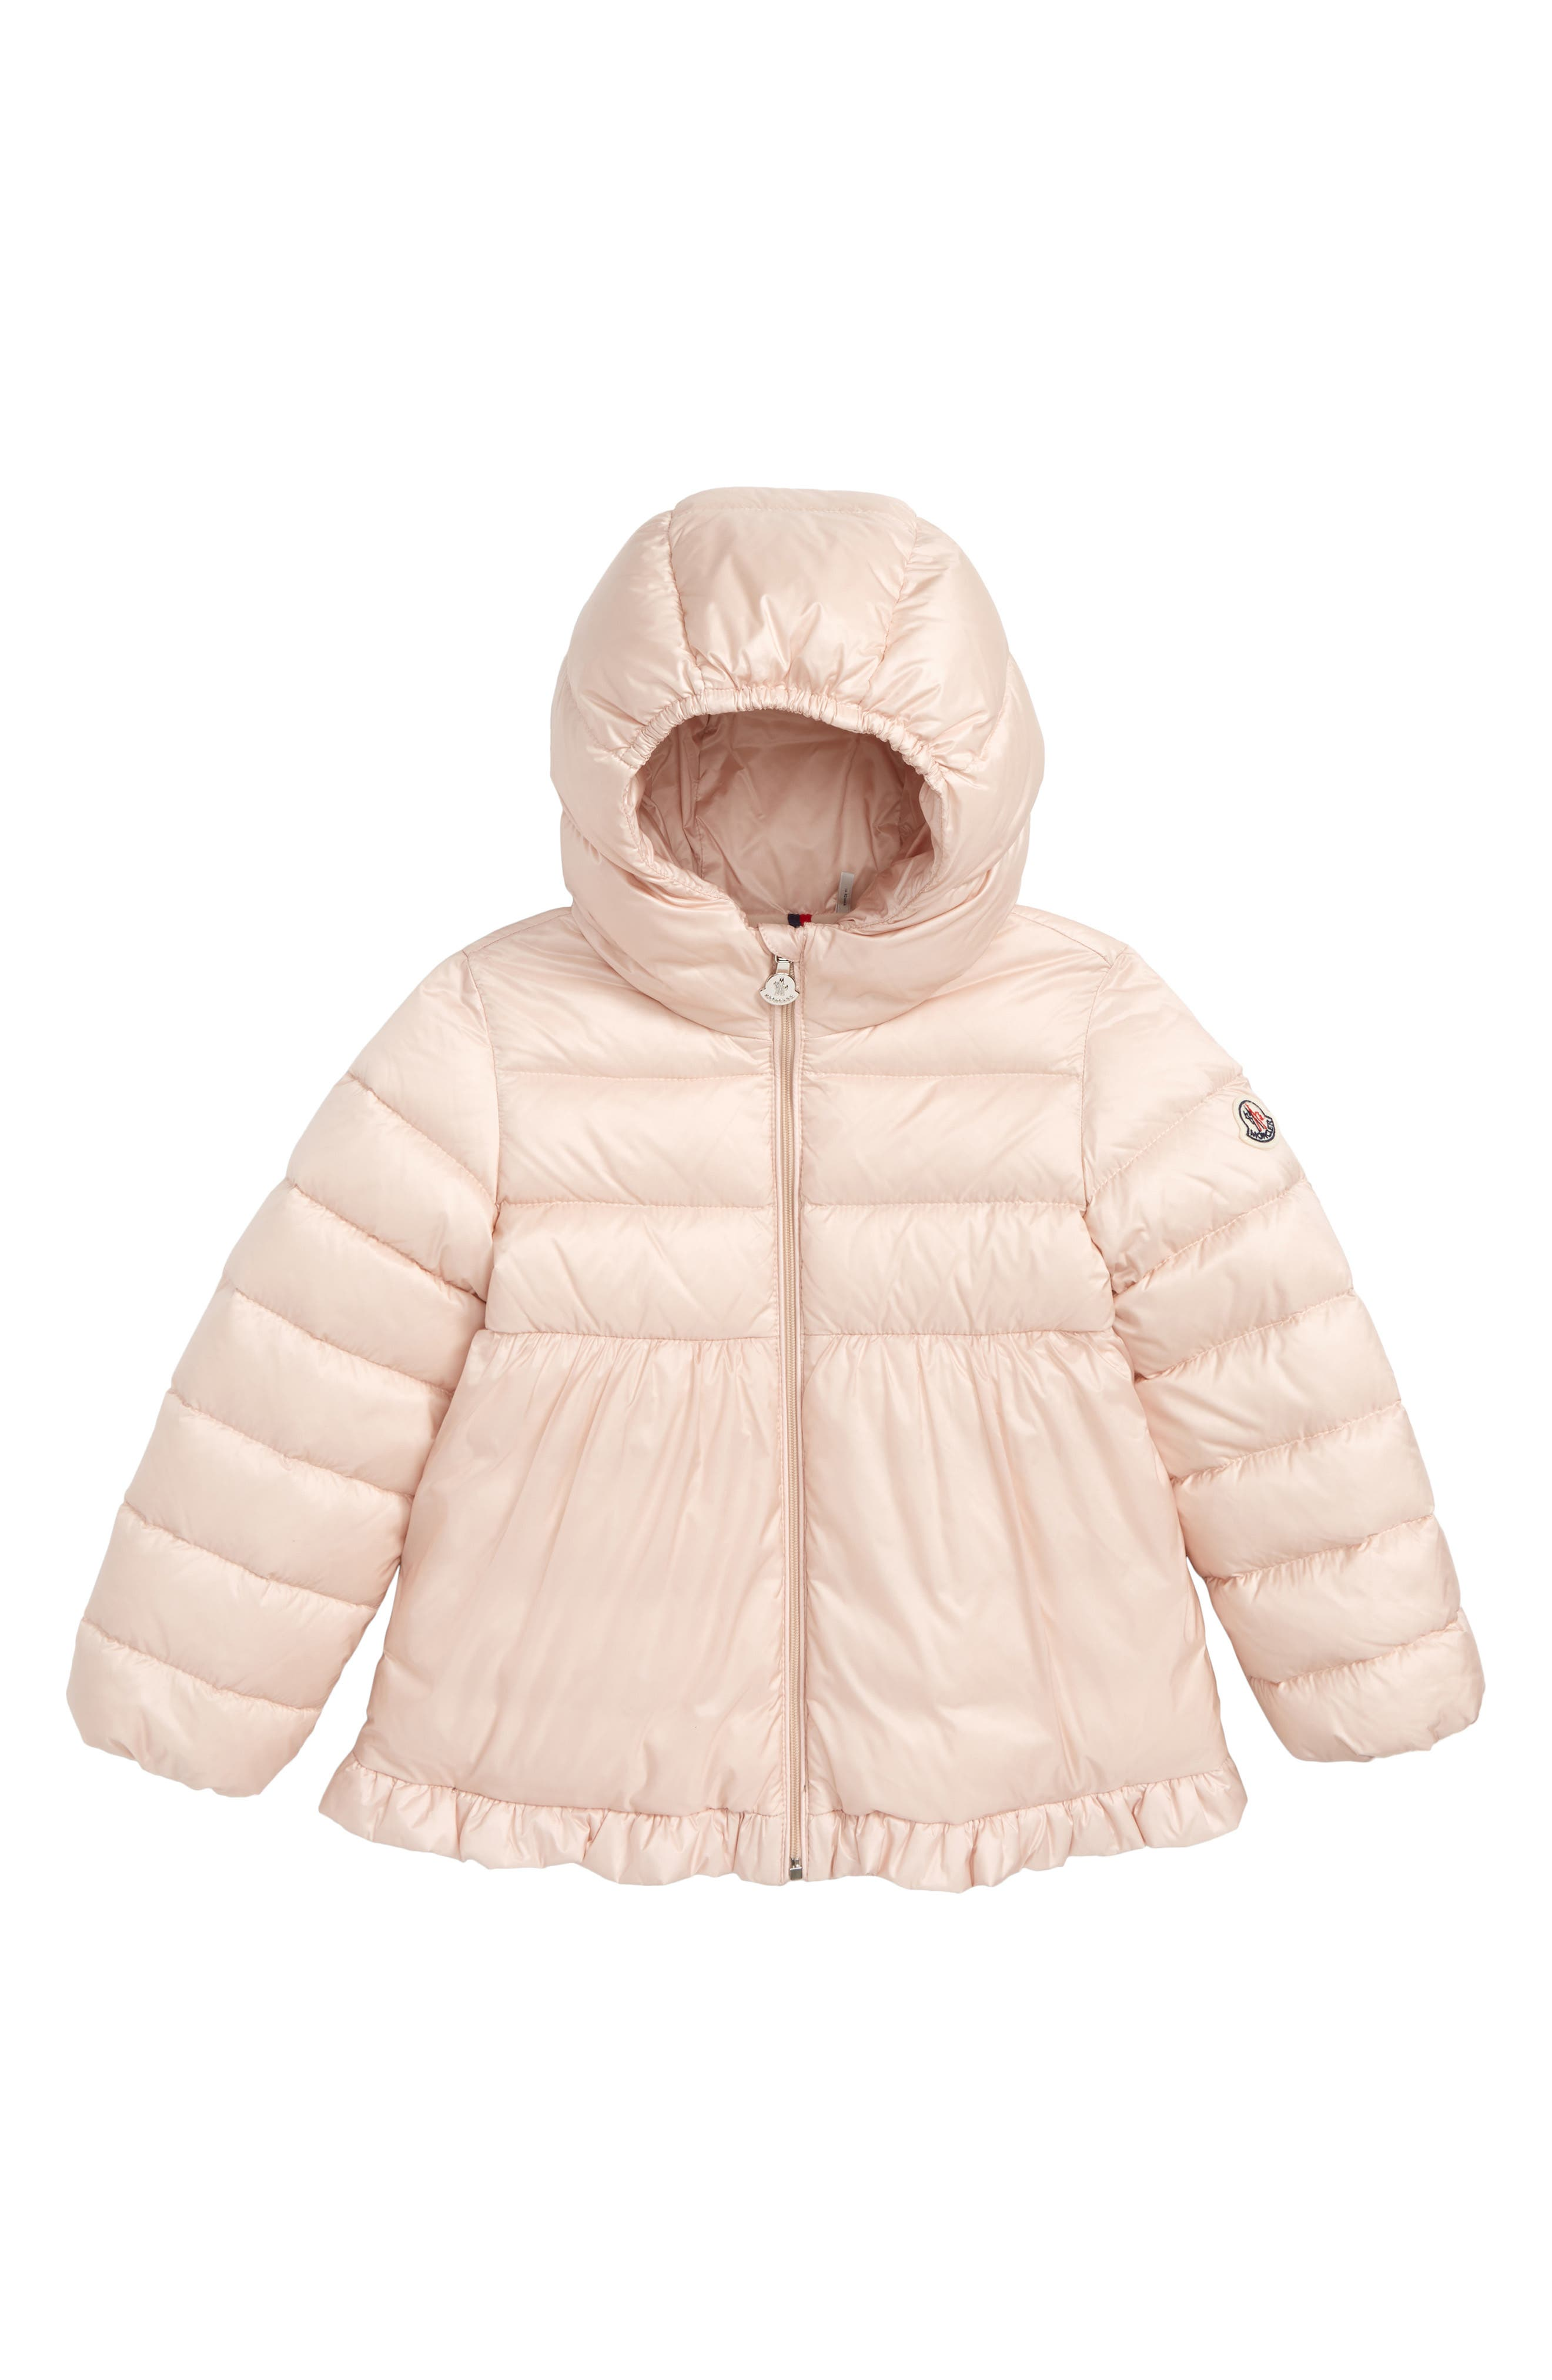 Odile Insulated Hooded Down Jacket,                             Main thumbnail 1, color,                             LIGHT PINK